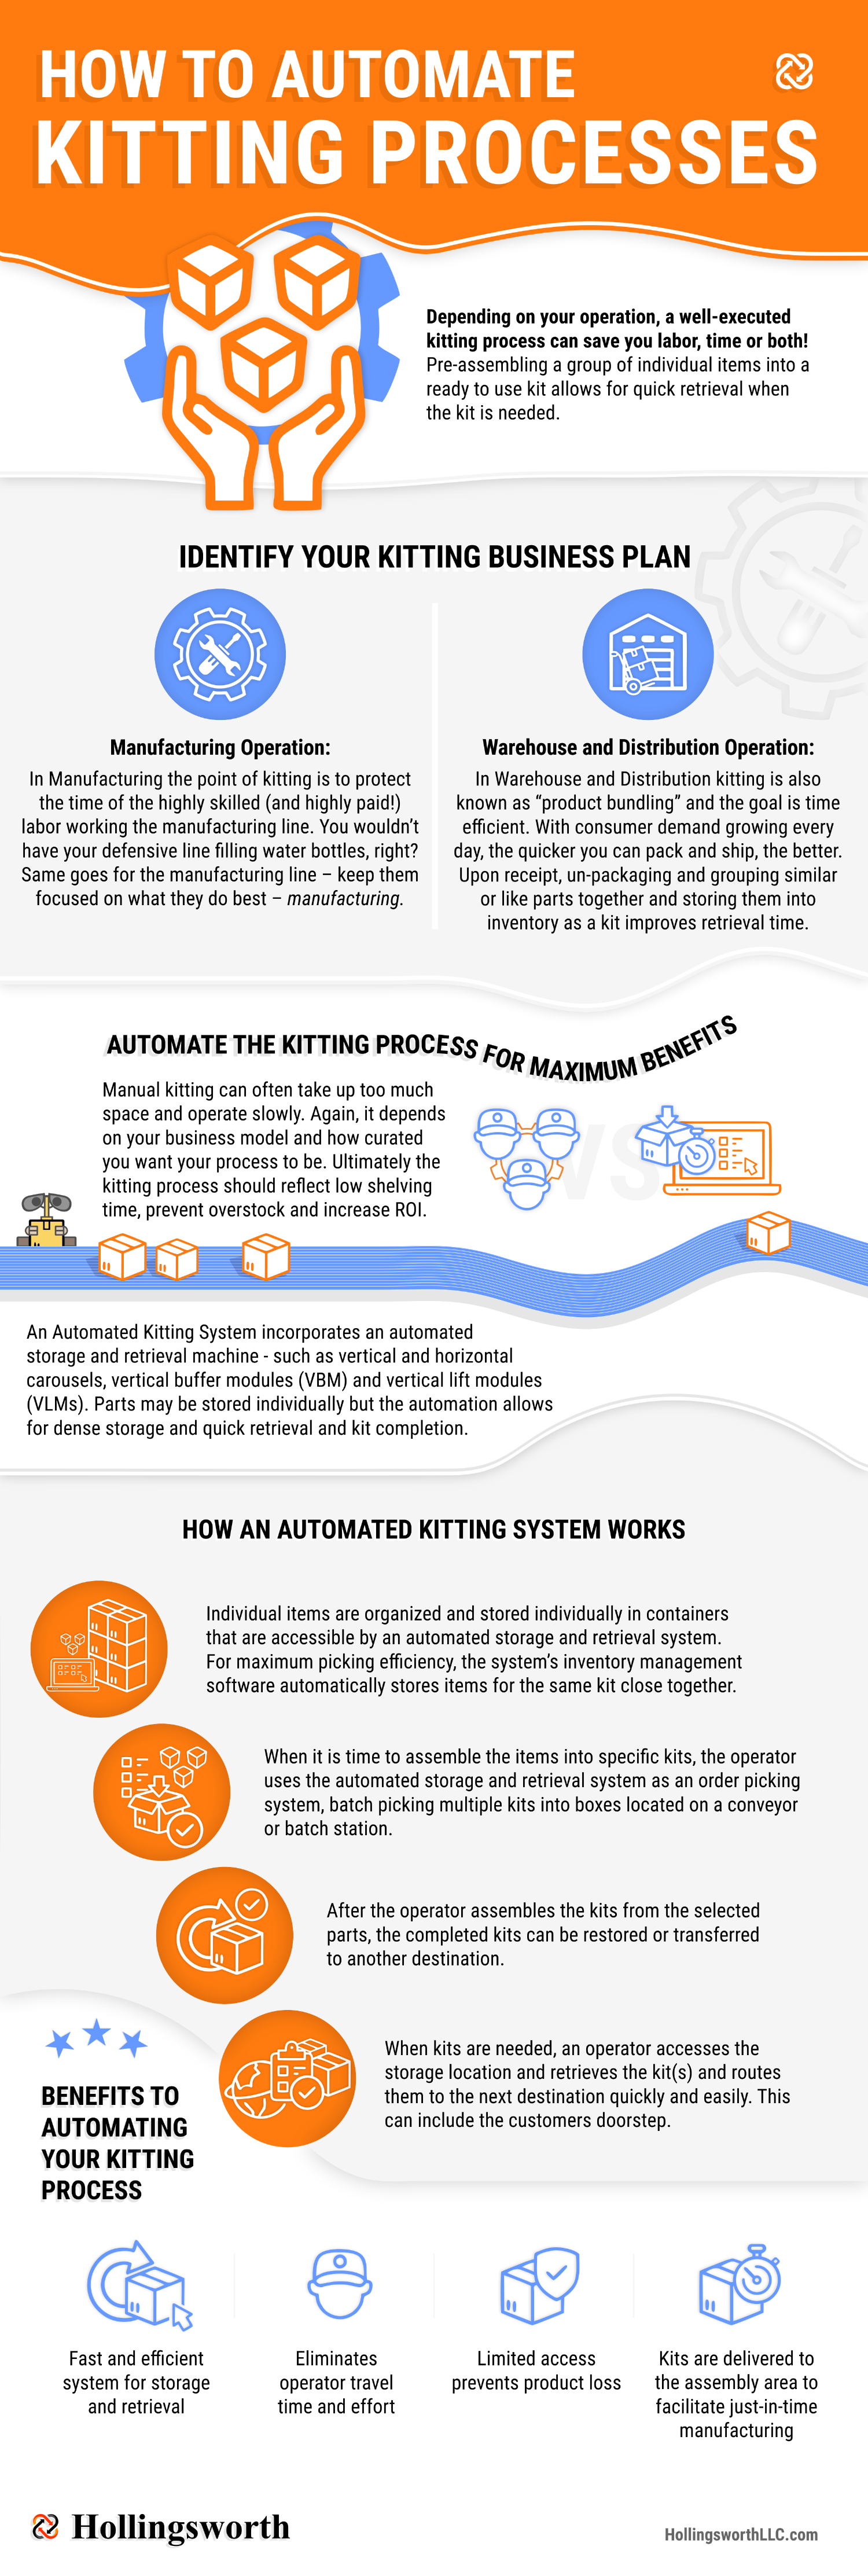 Infographic about automating the kitting process